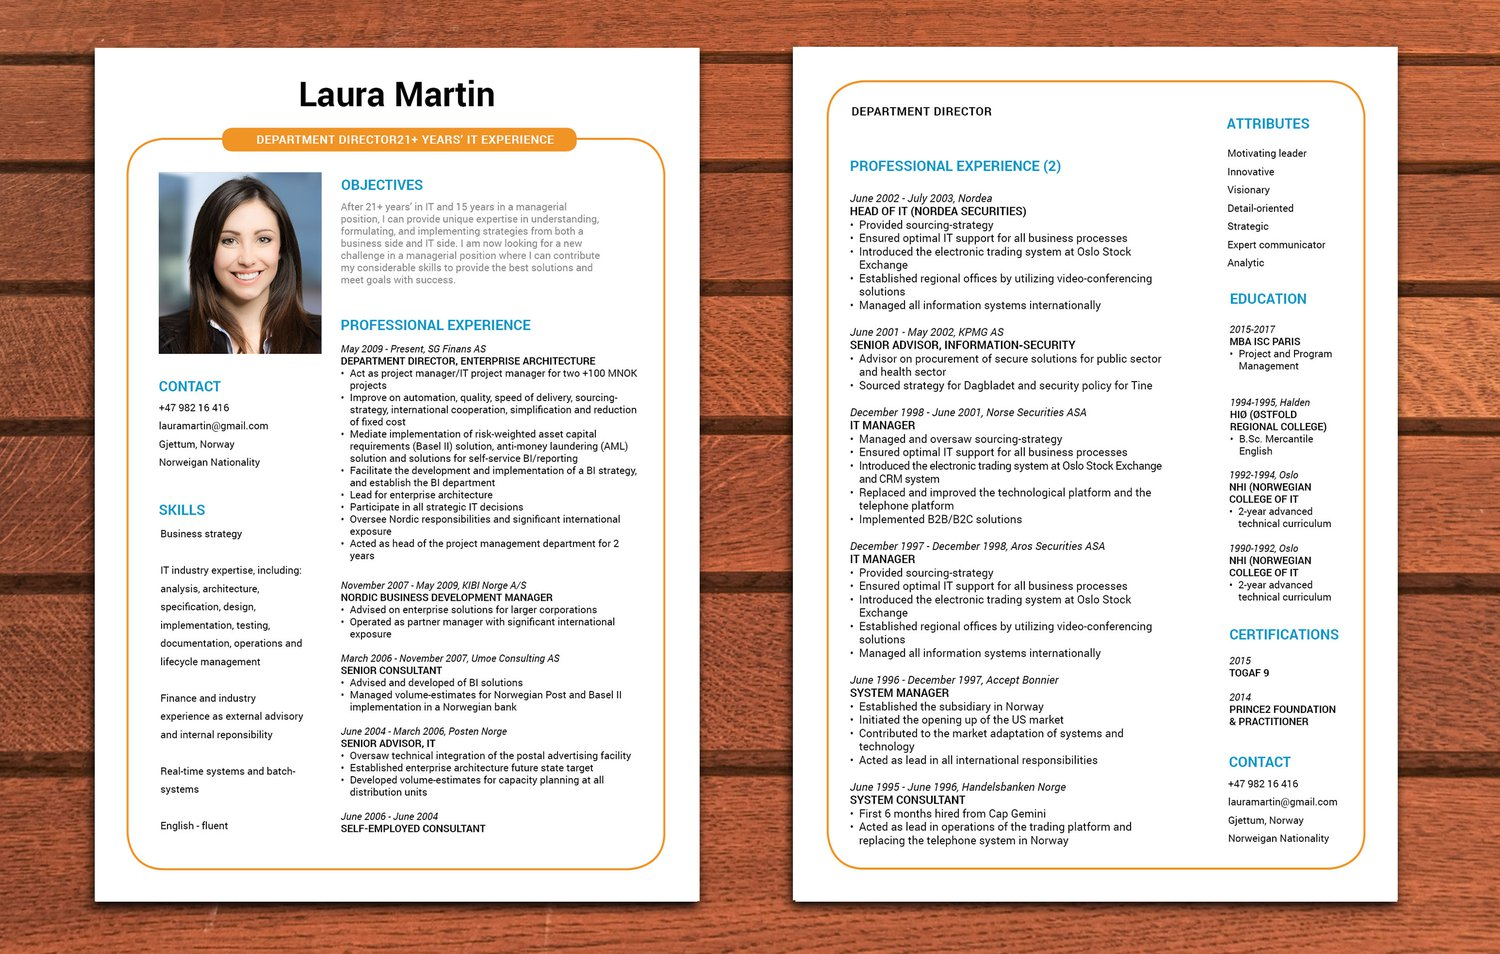 exemple de cv sur 2 pages CV sur 2 pages · myCVfactory exemple de cv sur 2 pages